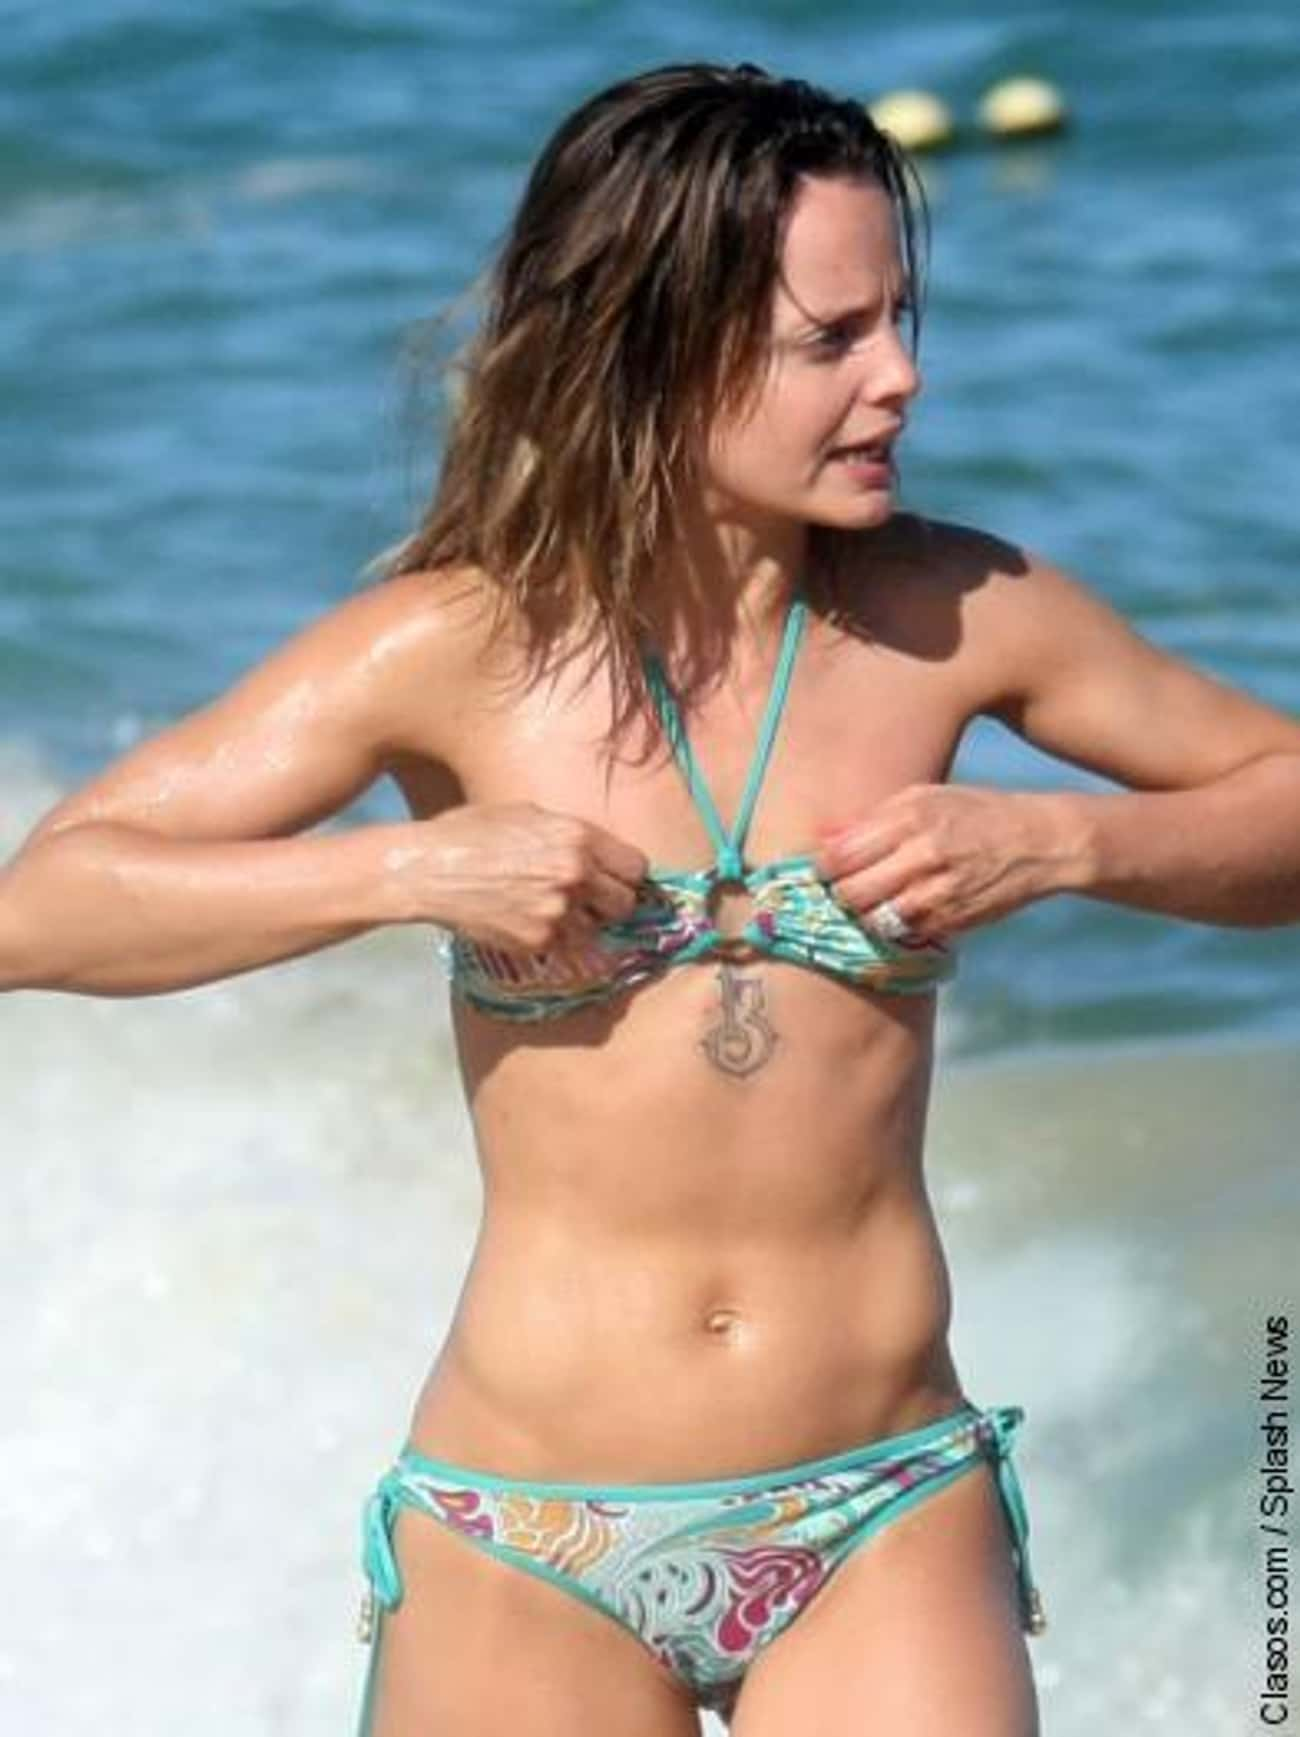 Mena Suvari is listed (or ranked) 4 on the list 26 Celebrities with Chest Tattoos